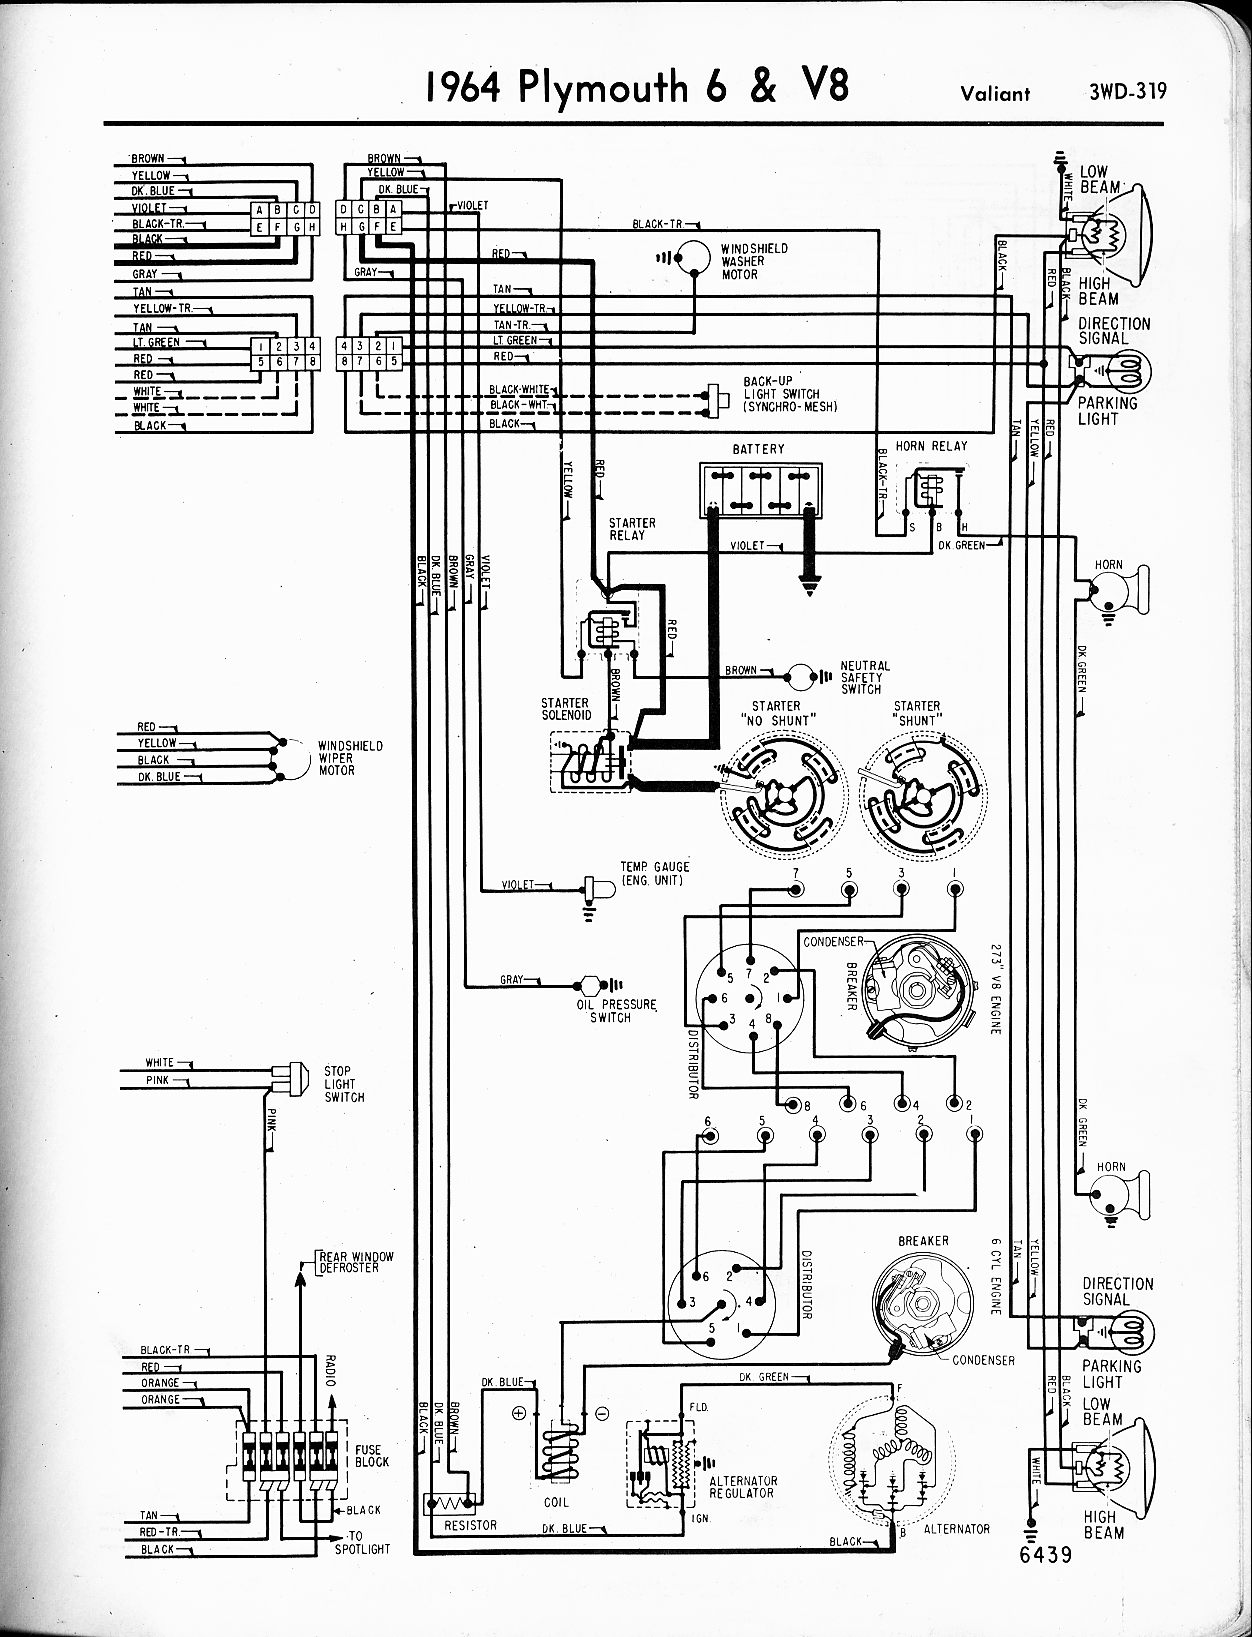 No 6708  1965 Plymouth Valiant Or Barracuda Engine Compartment Wiring Diagram Free Diagram